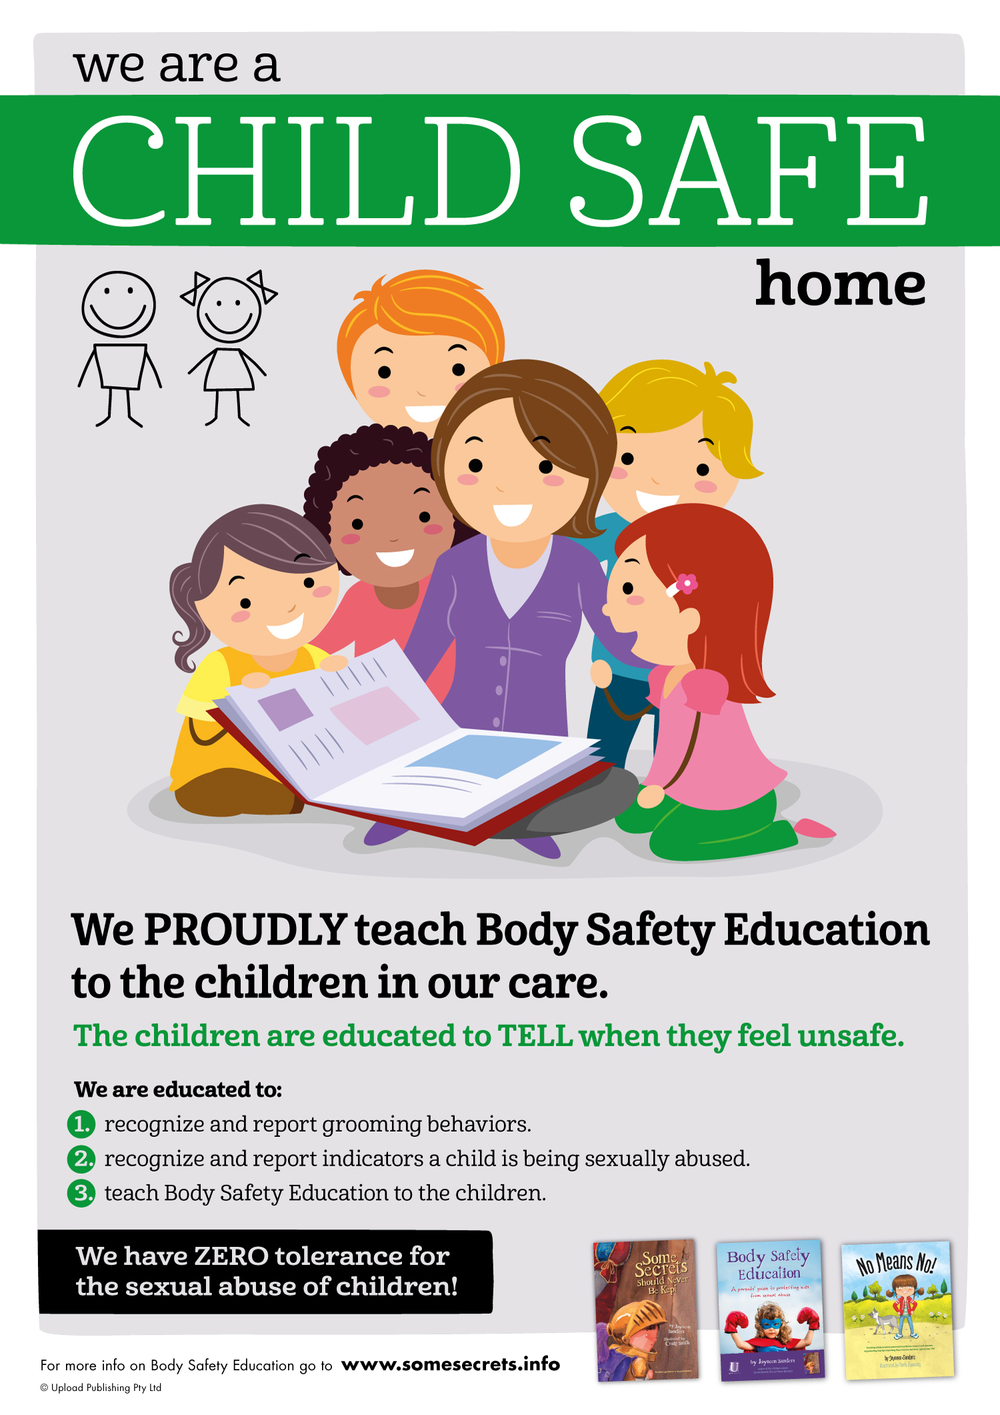 ChildSafe_Poster_Home_US.jpg